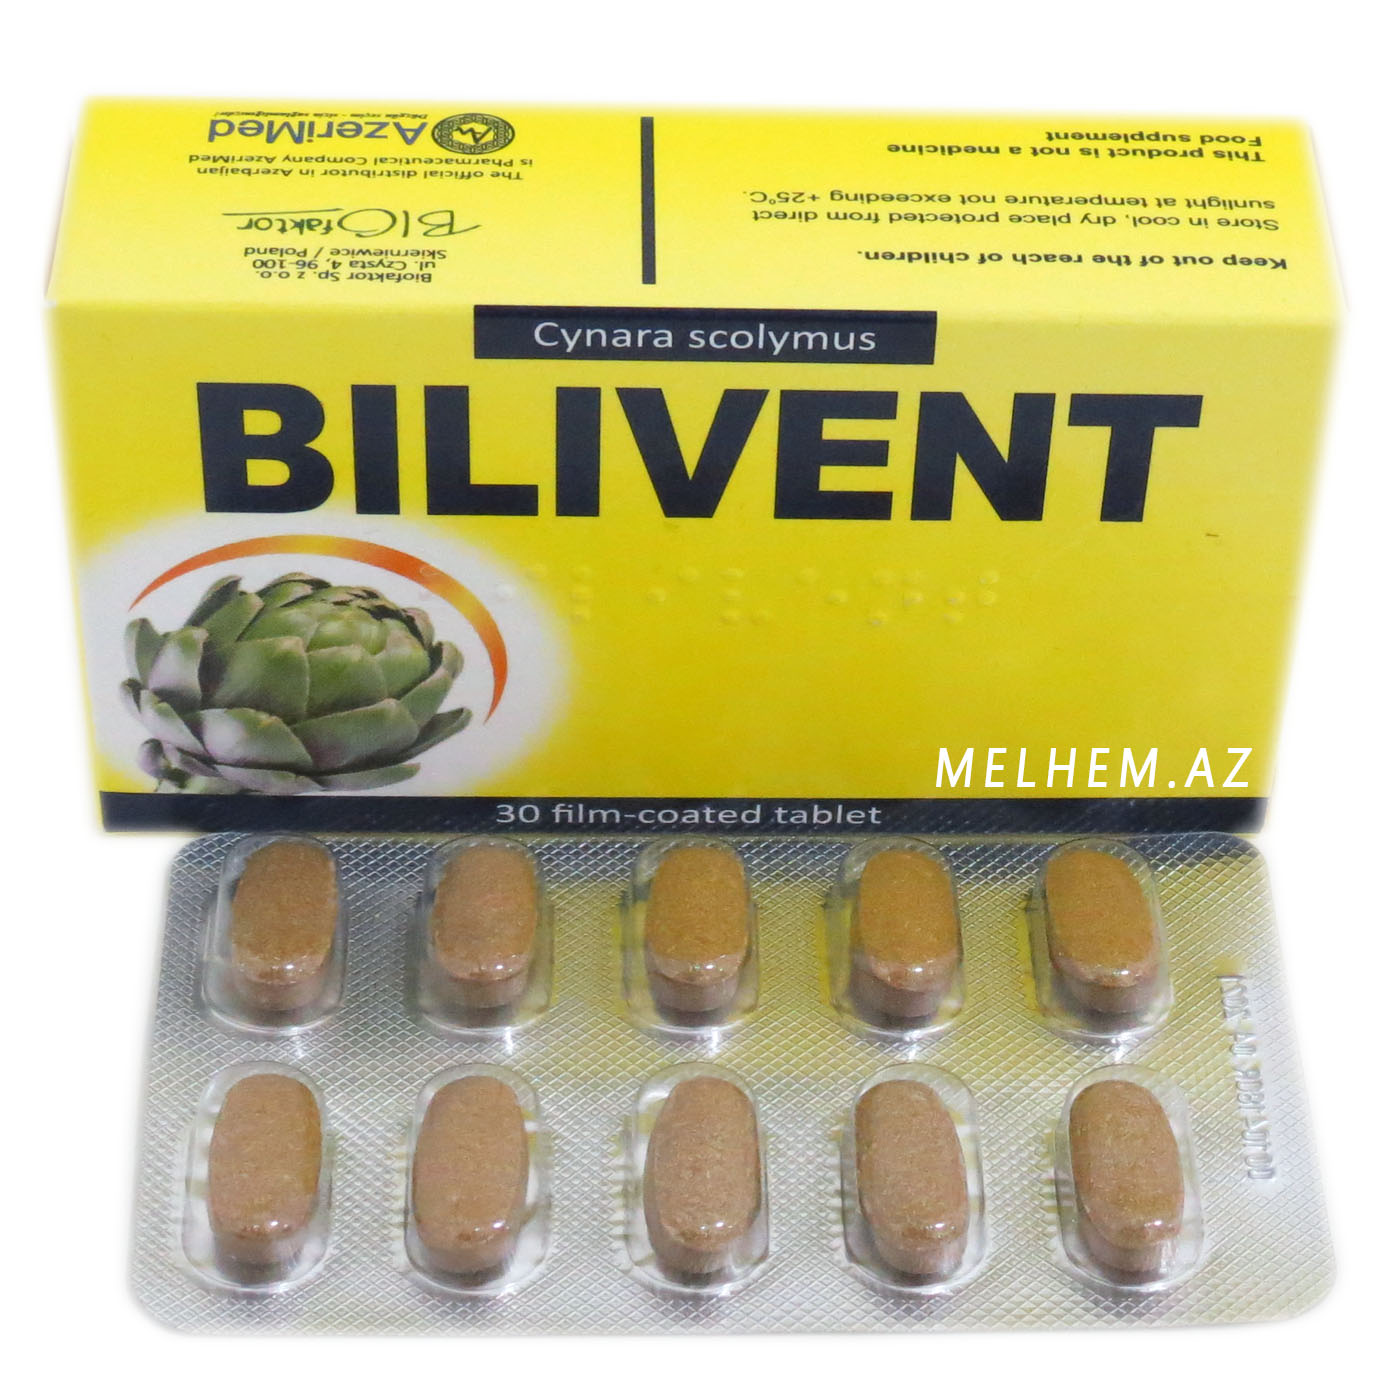 BİLİVENT